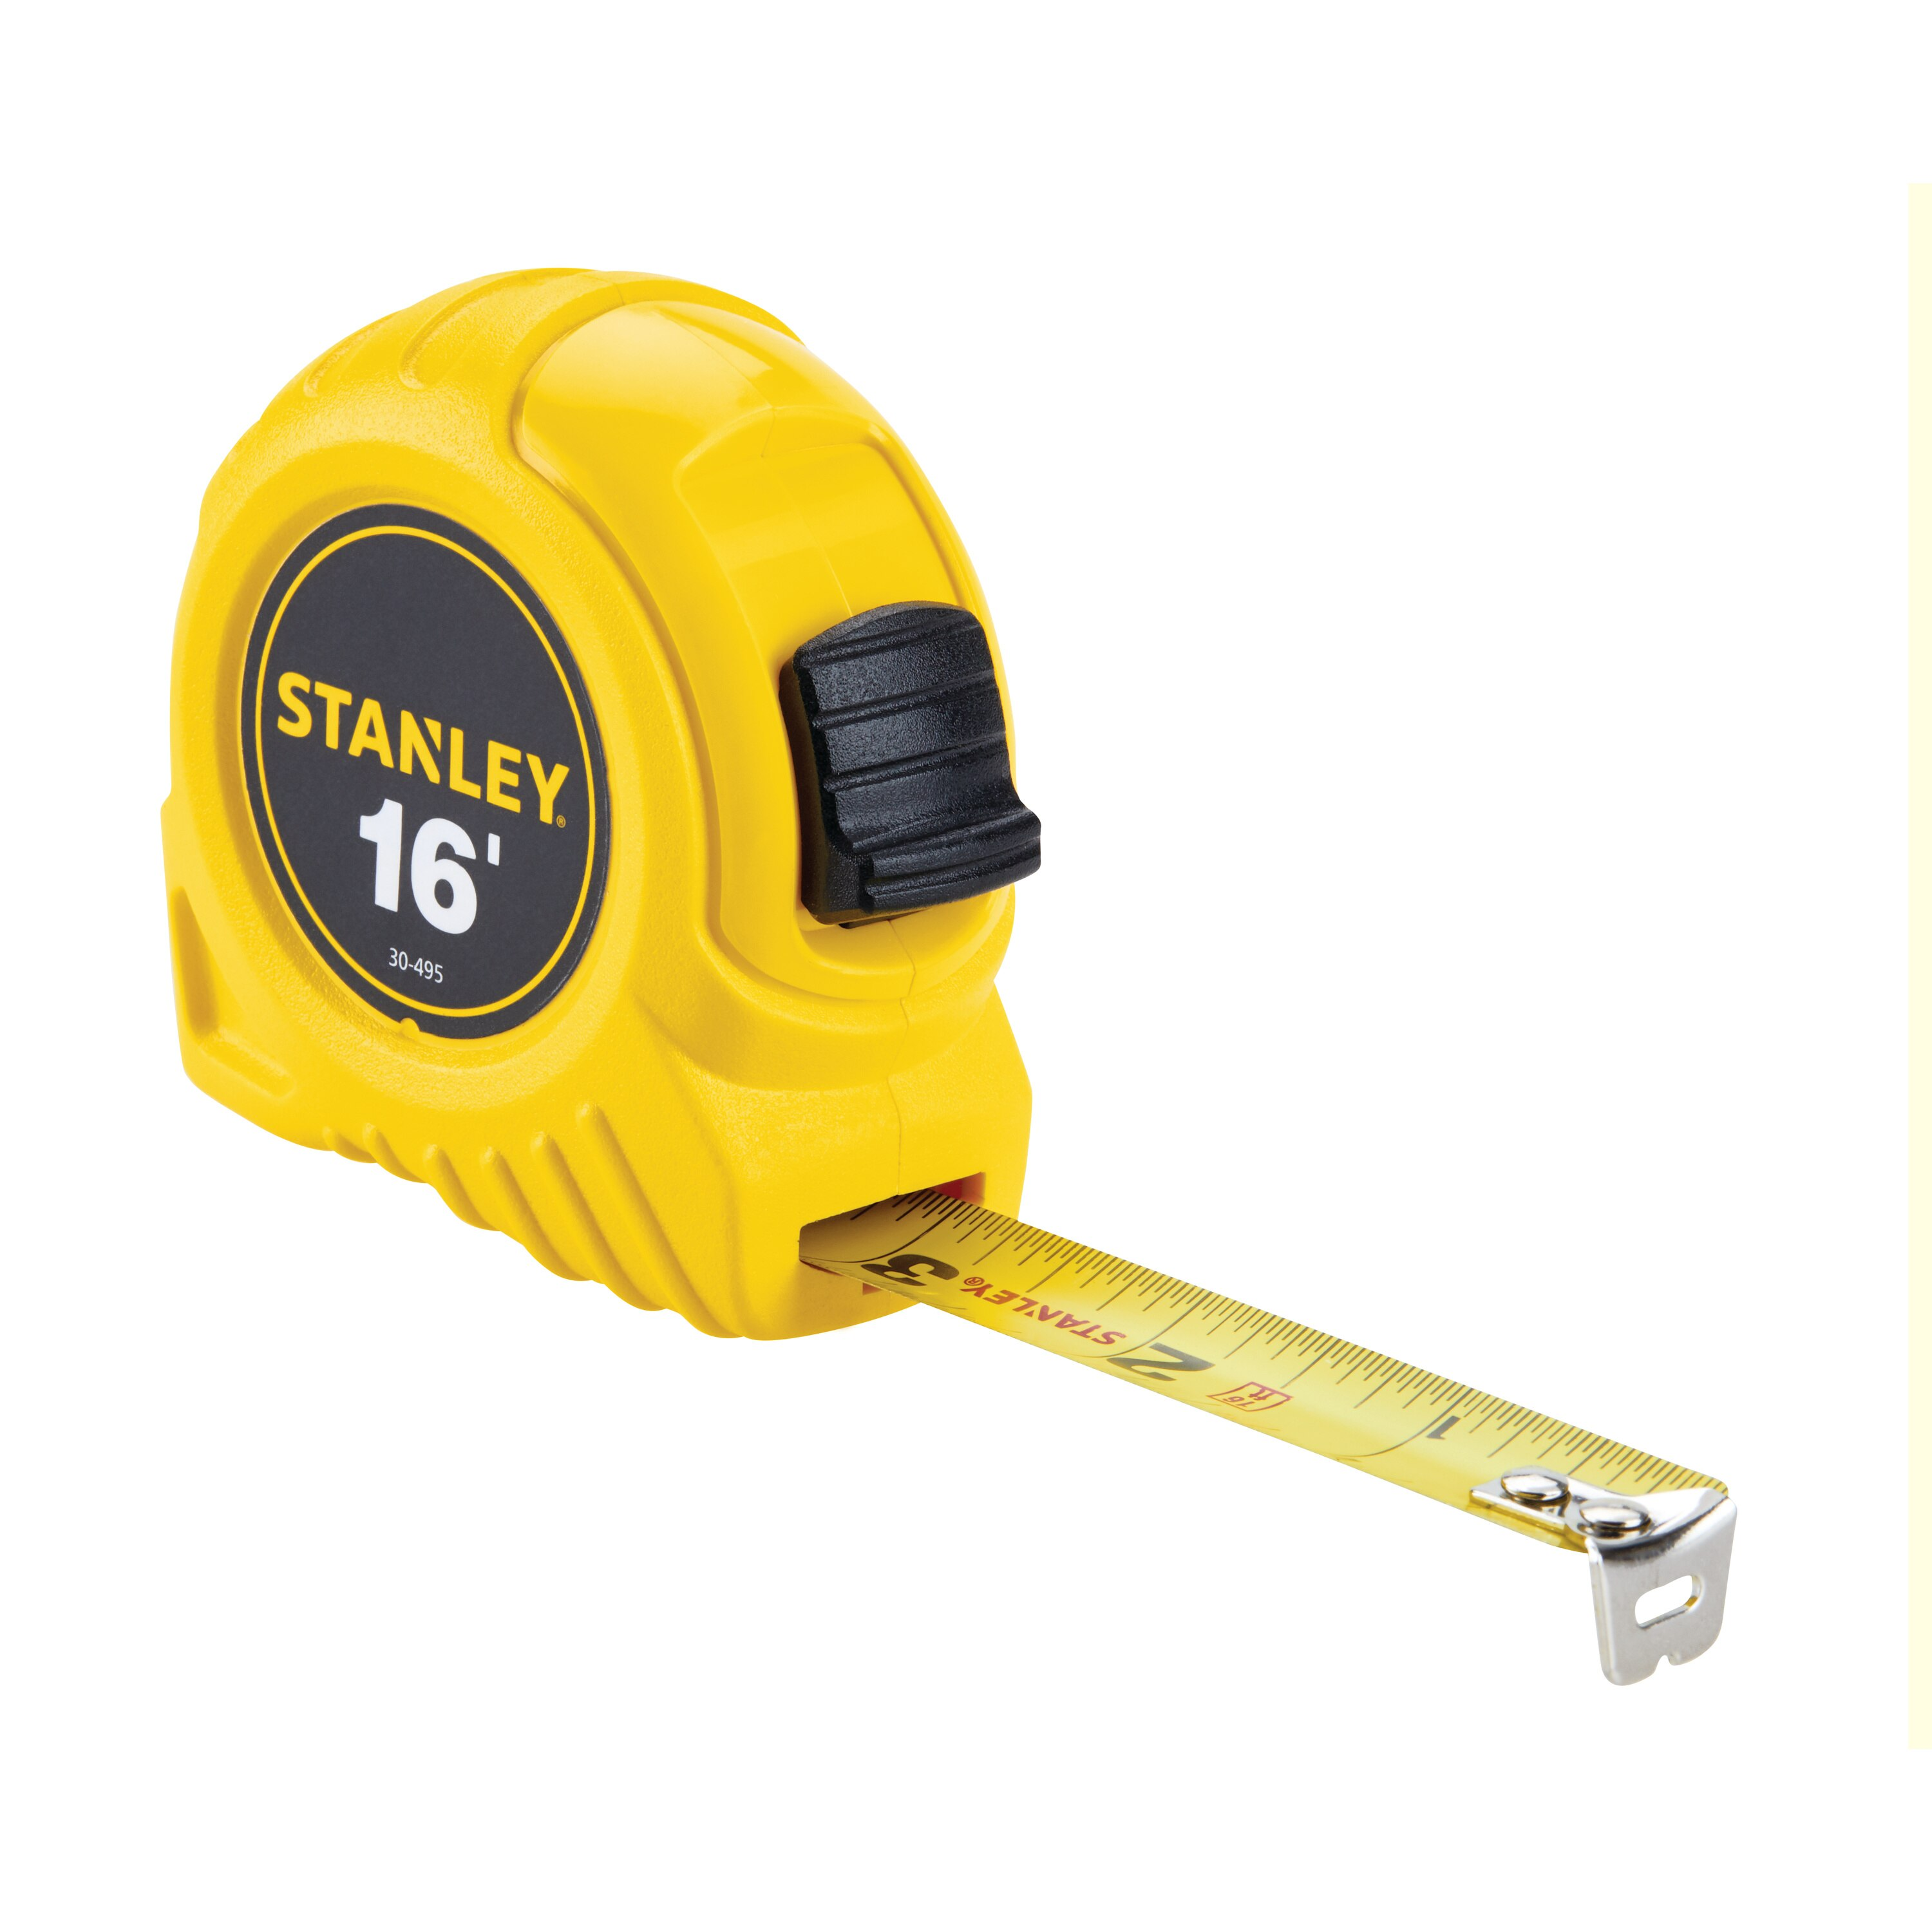 Stanley Tools - 16 ft Tape Measure - 30-495